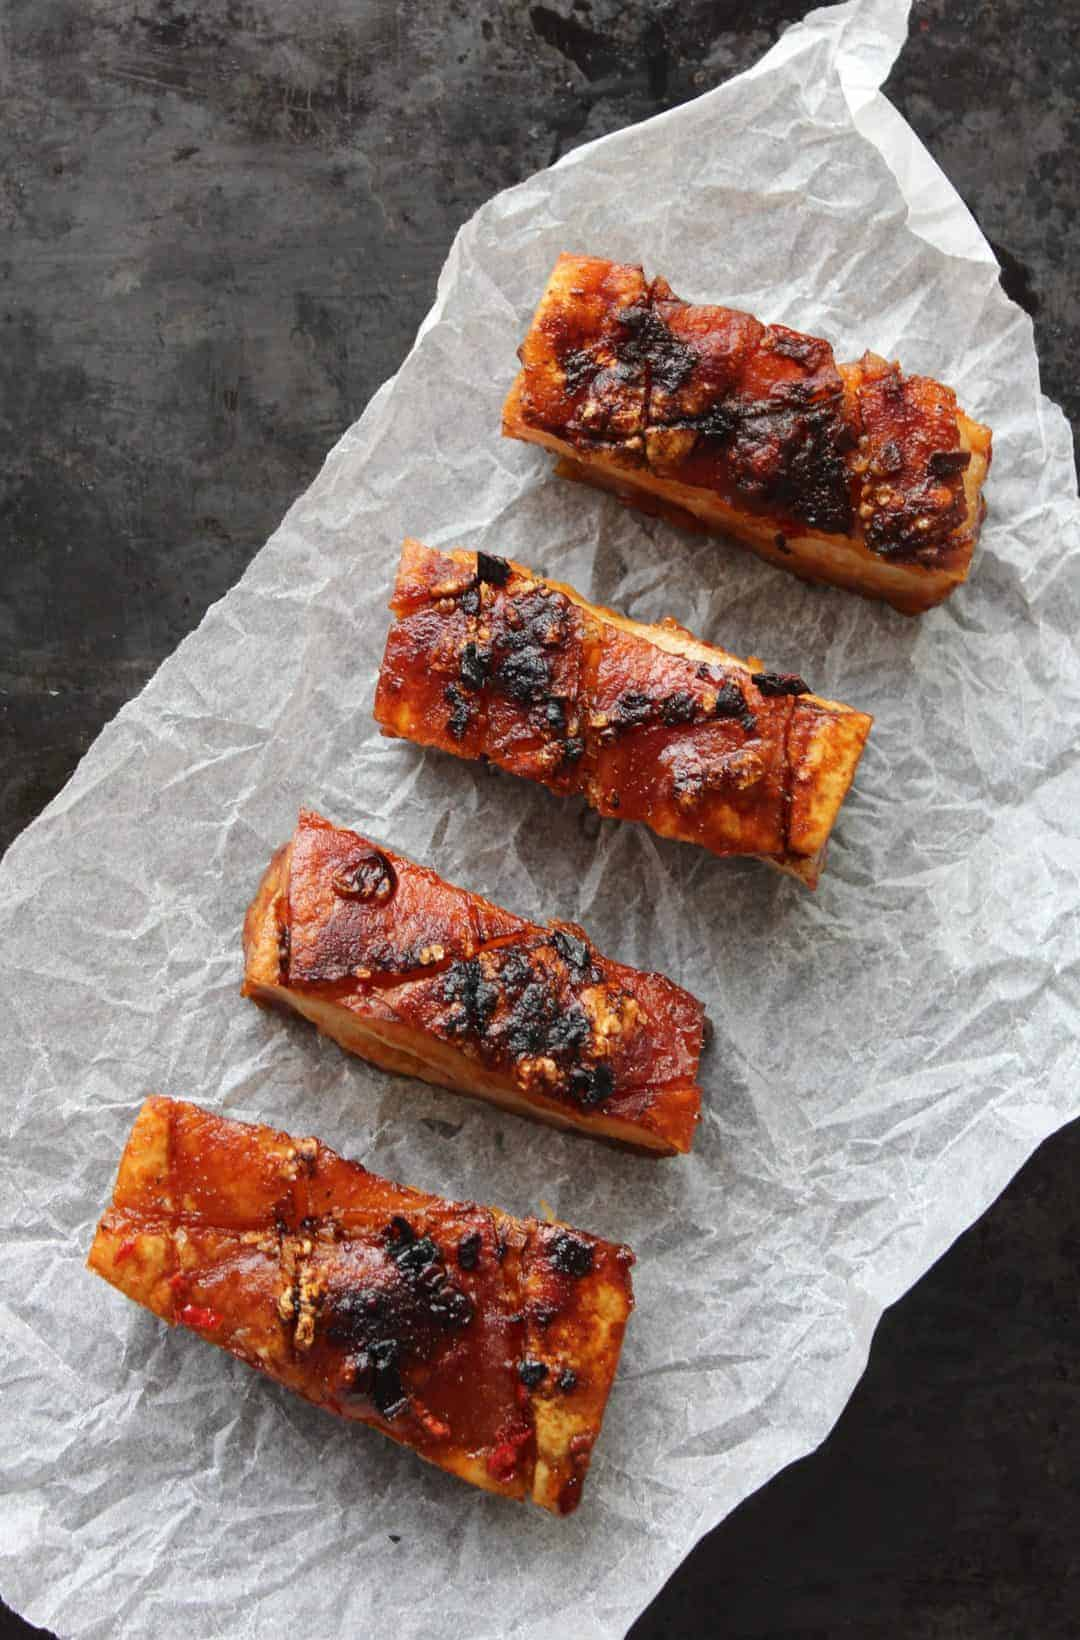 Chilli and Cider Pork Belly recipe with crispy crackling